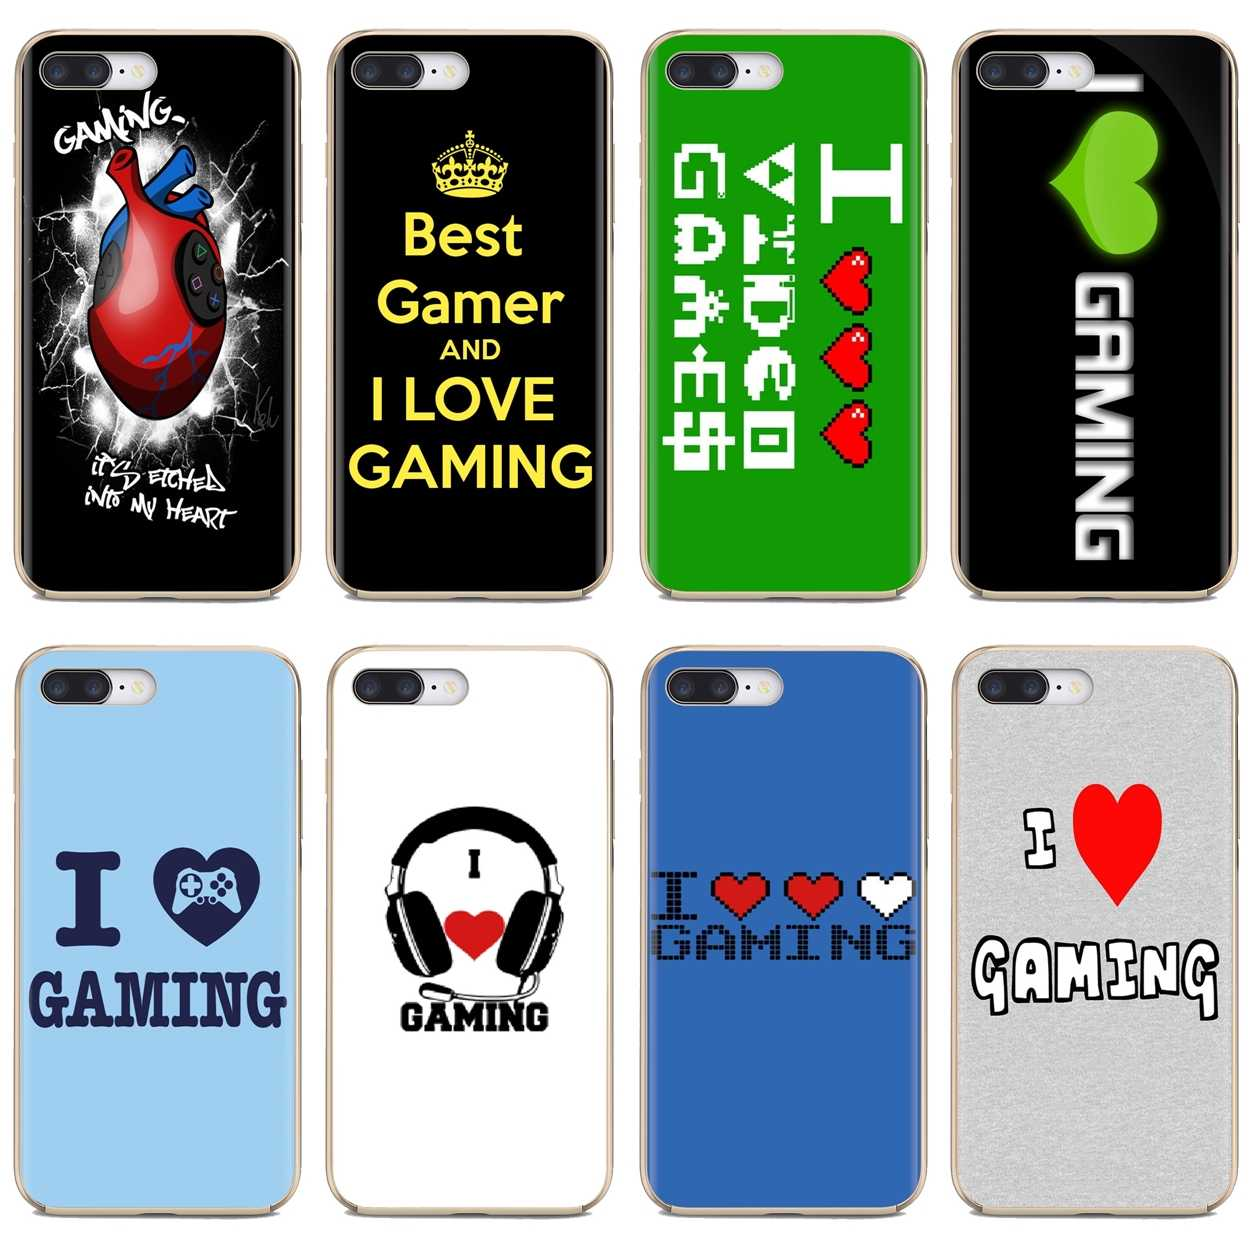 For Xiaomi Mi A1 A2 A3 5X 6X 8 9 9t Lite SE Pro Mi Max Mix 1 2 3 2S I HEART GAMING Pattern Print Silicone Cover